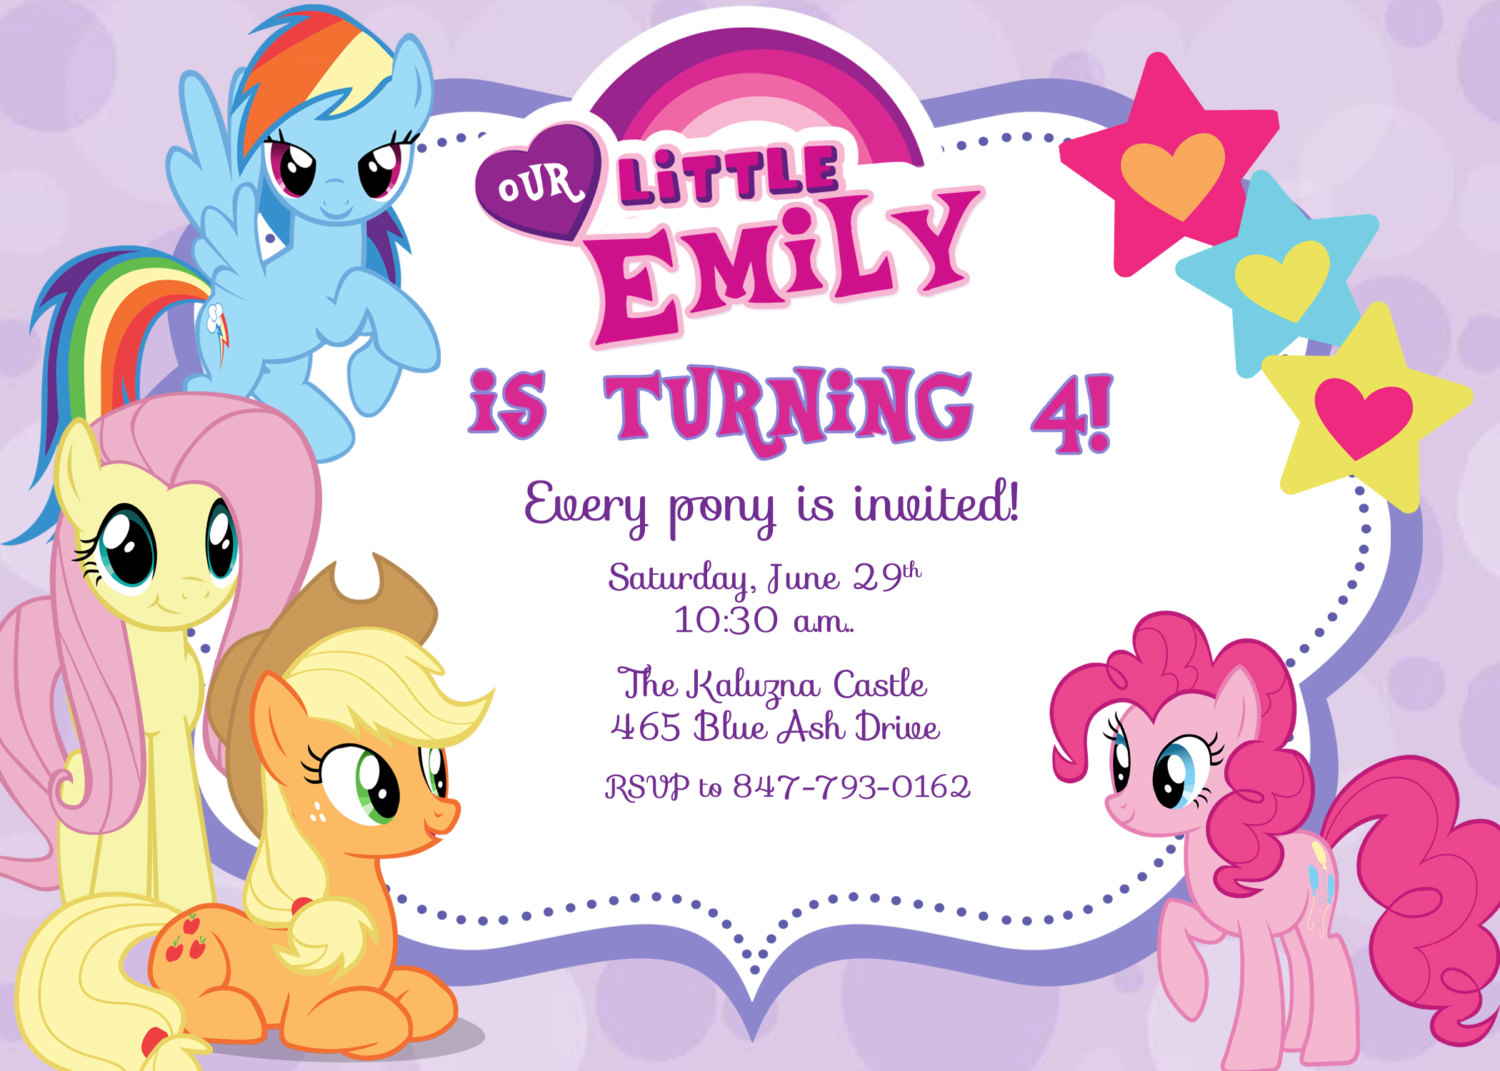 design my own birthday invitation ; design-my-own-birthday-invitation-my-little-pony-birthday-invitations-is-one-of-the-best-idea-for-you-to-make-your-own-birthday-invitation-design-1